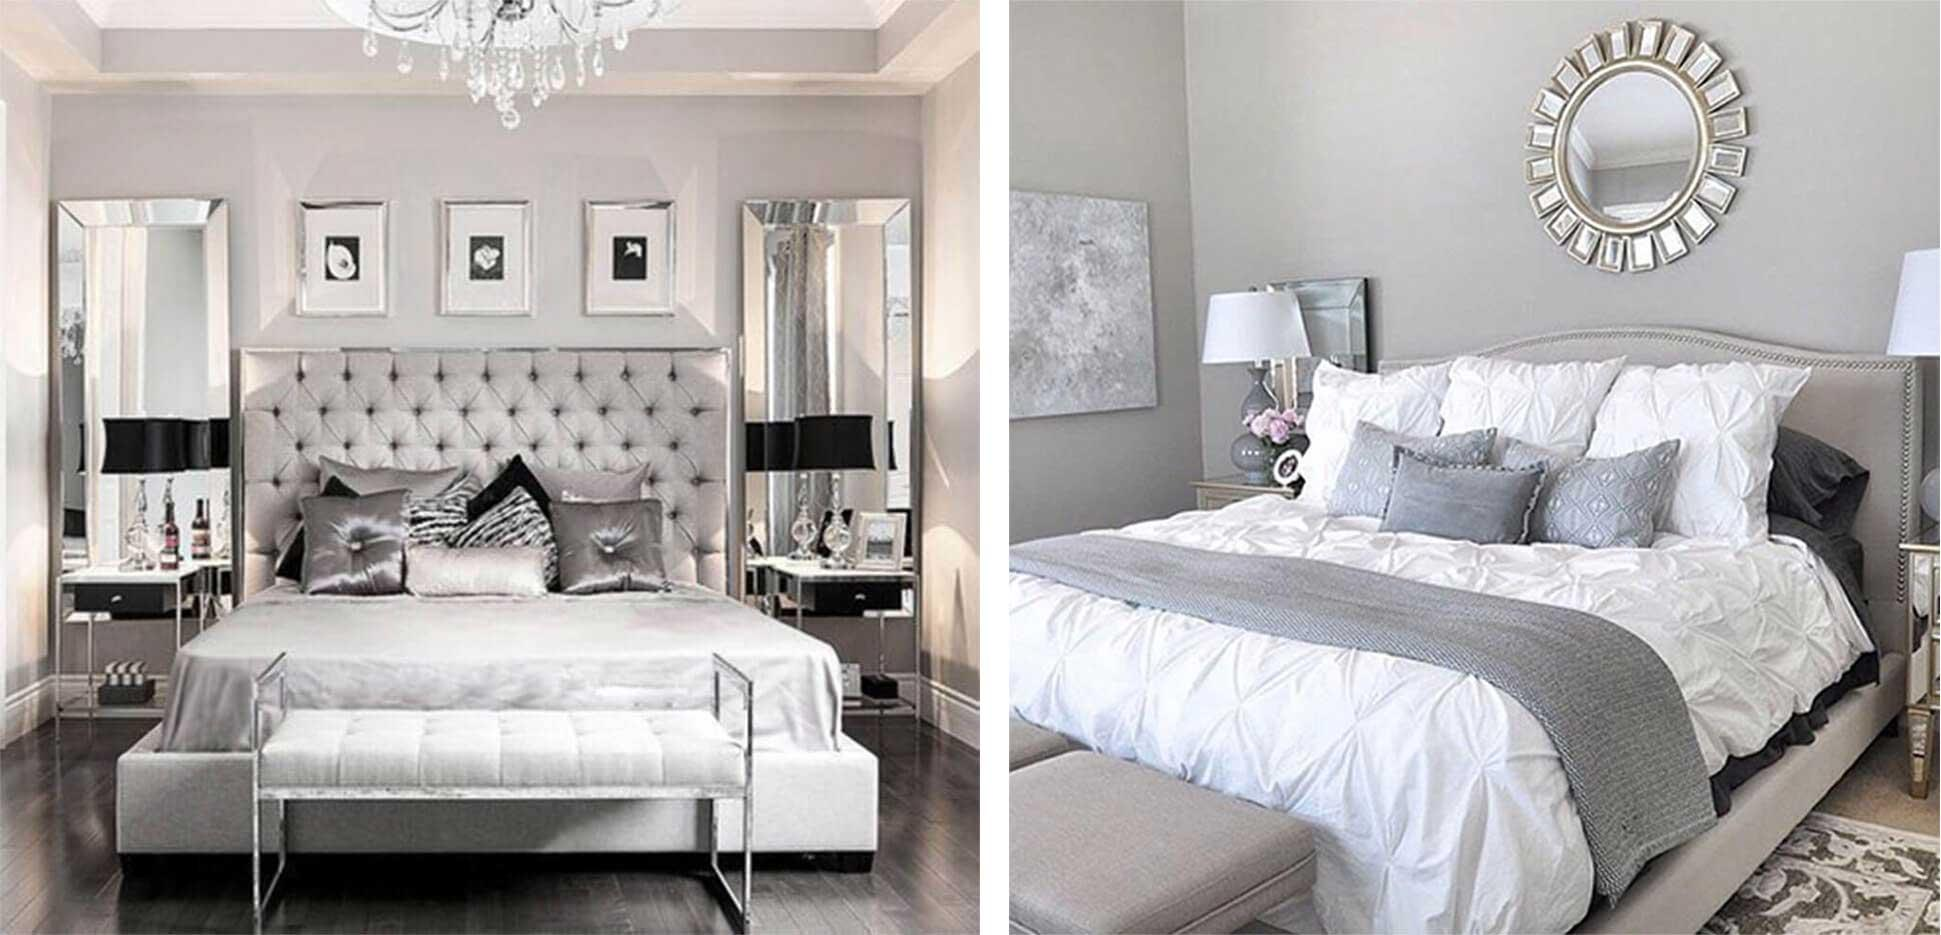 Grey bed with tufted headboard, dark silver pillows, side tables with chrome legs.